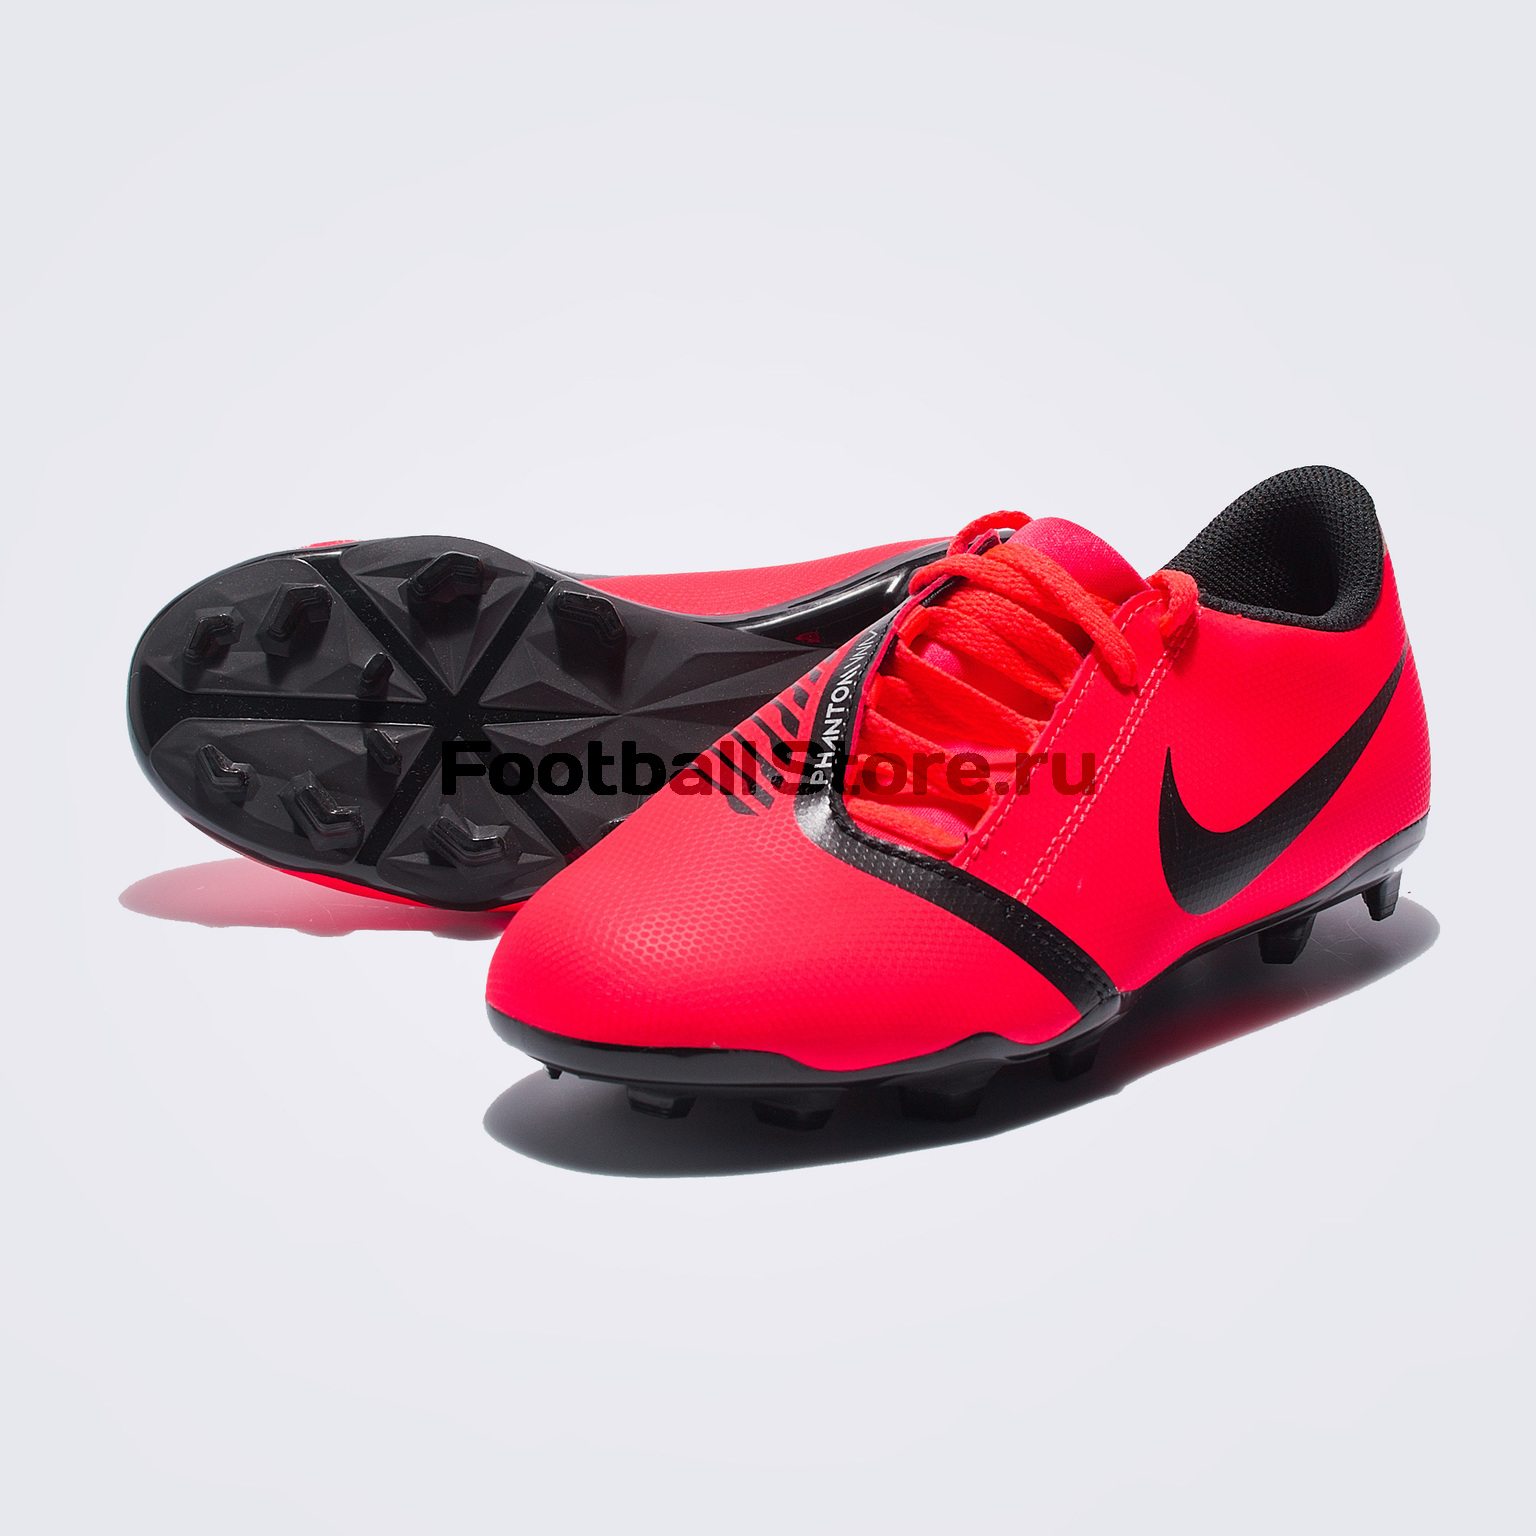 dd5a79cc Бутсы детские Nike Phantom Venom Club FG AO0396-600